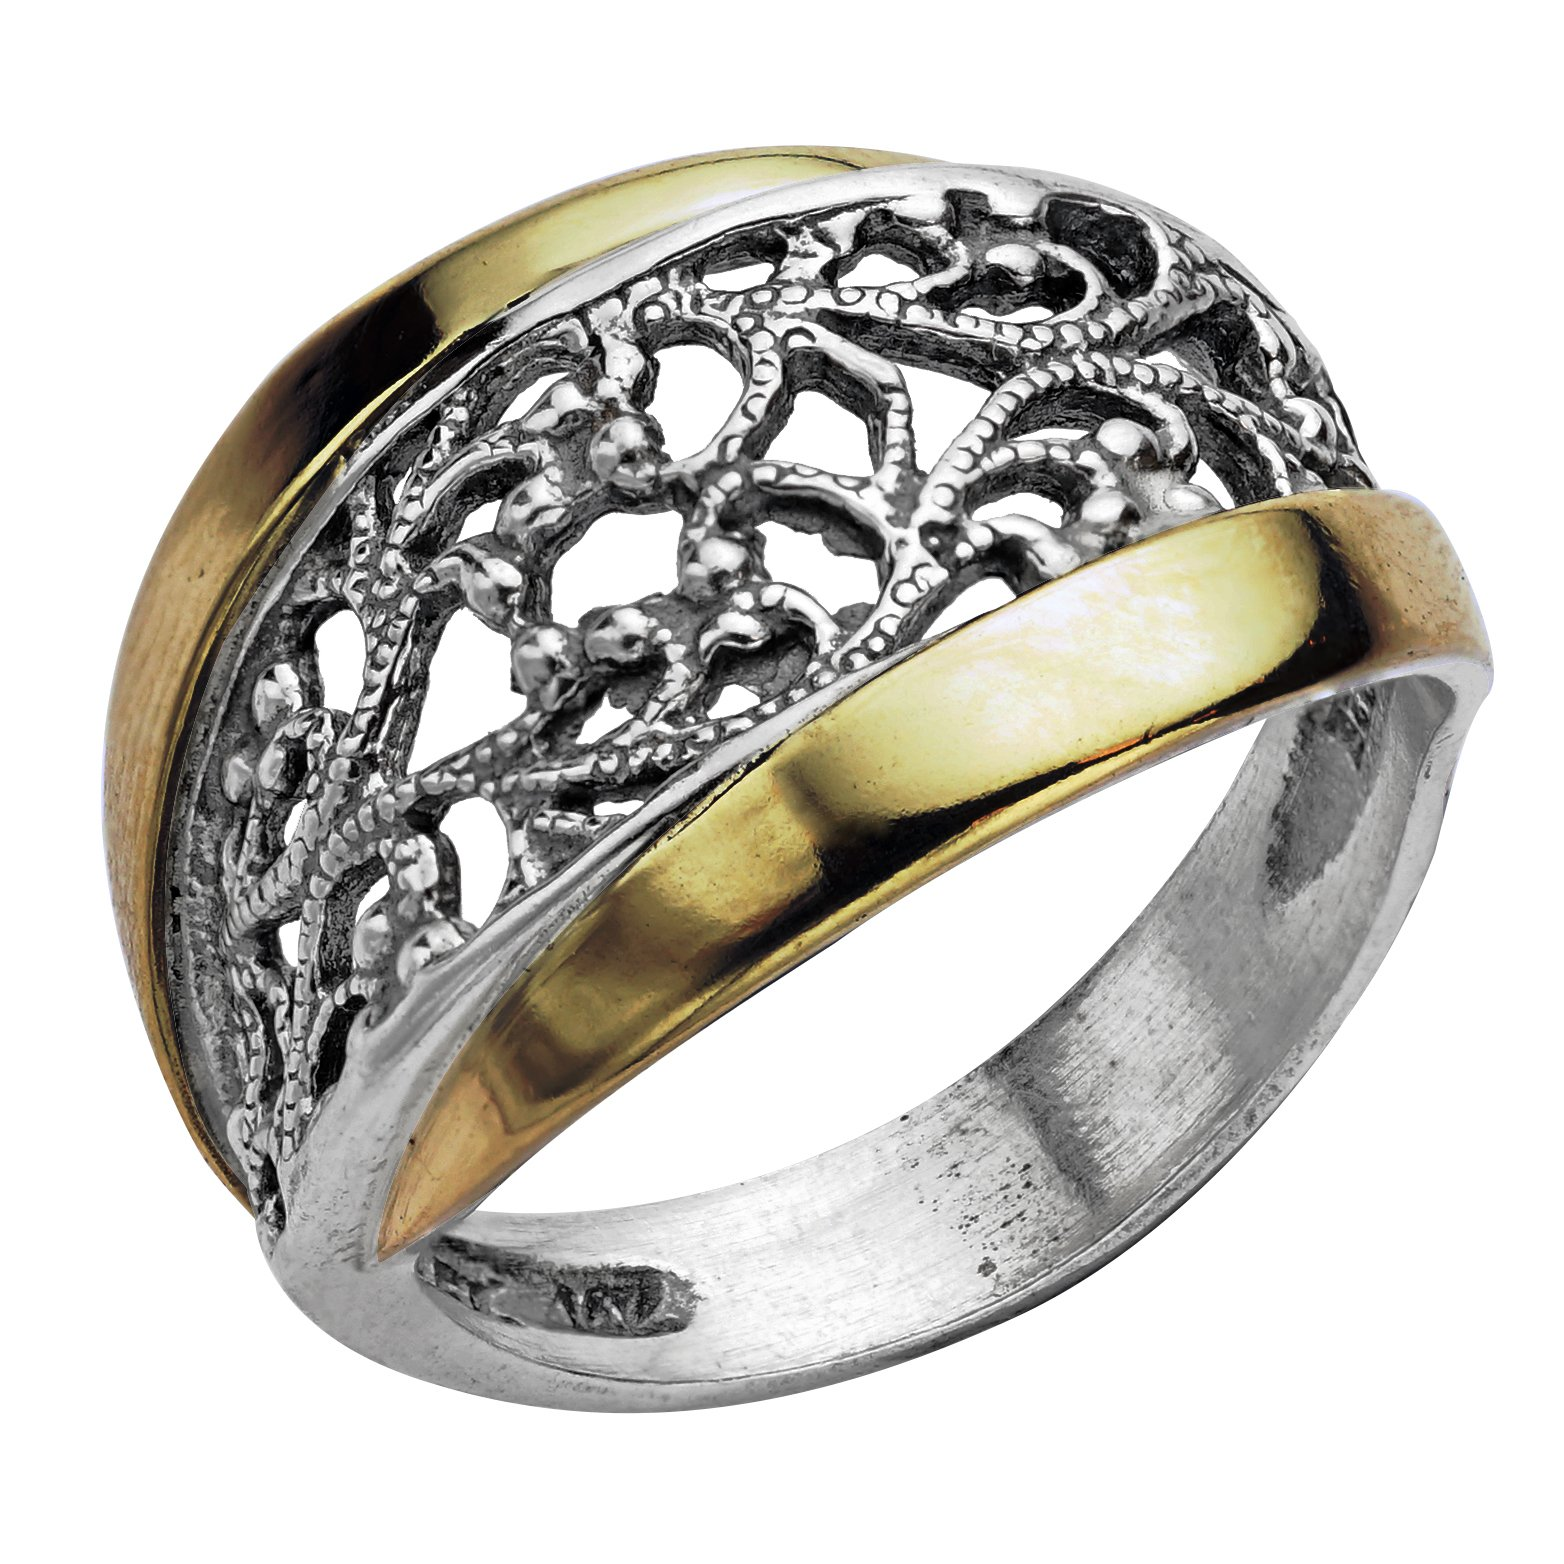 Paz Creations ♥925 Sterling Silver and 14K Yellow Gold Lace Ring (8), Made in Israel